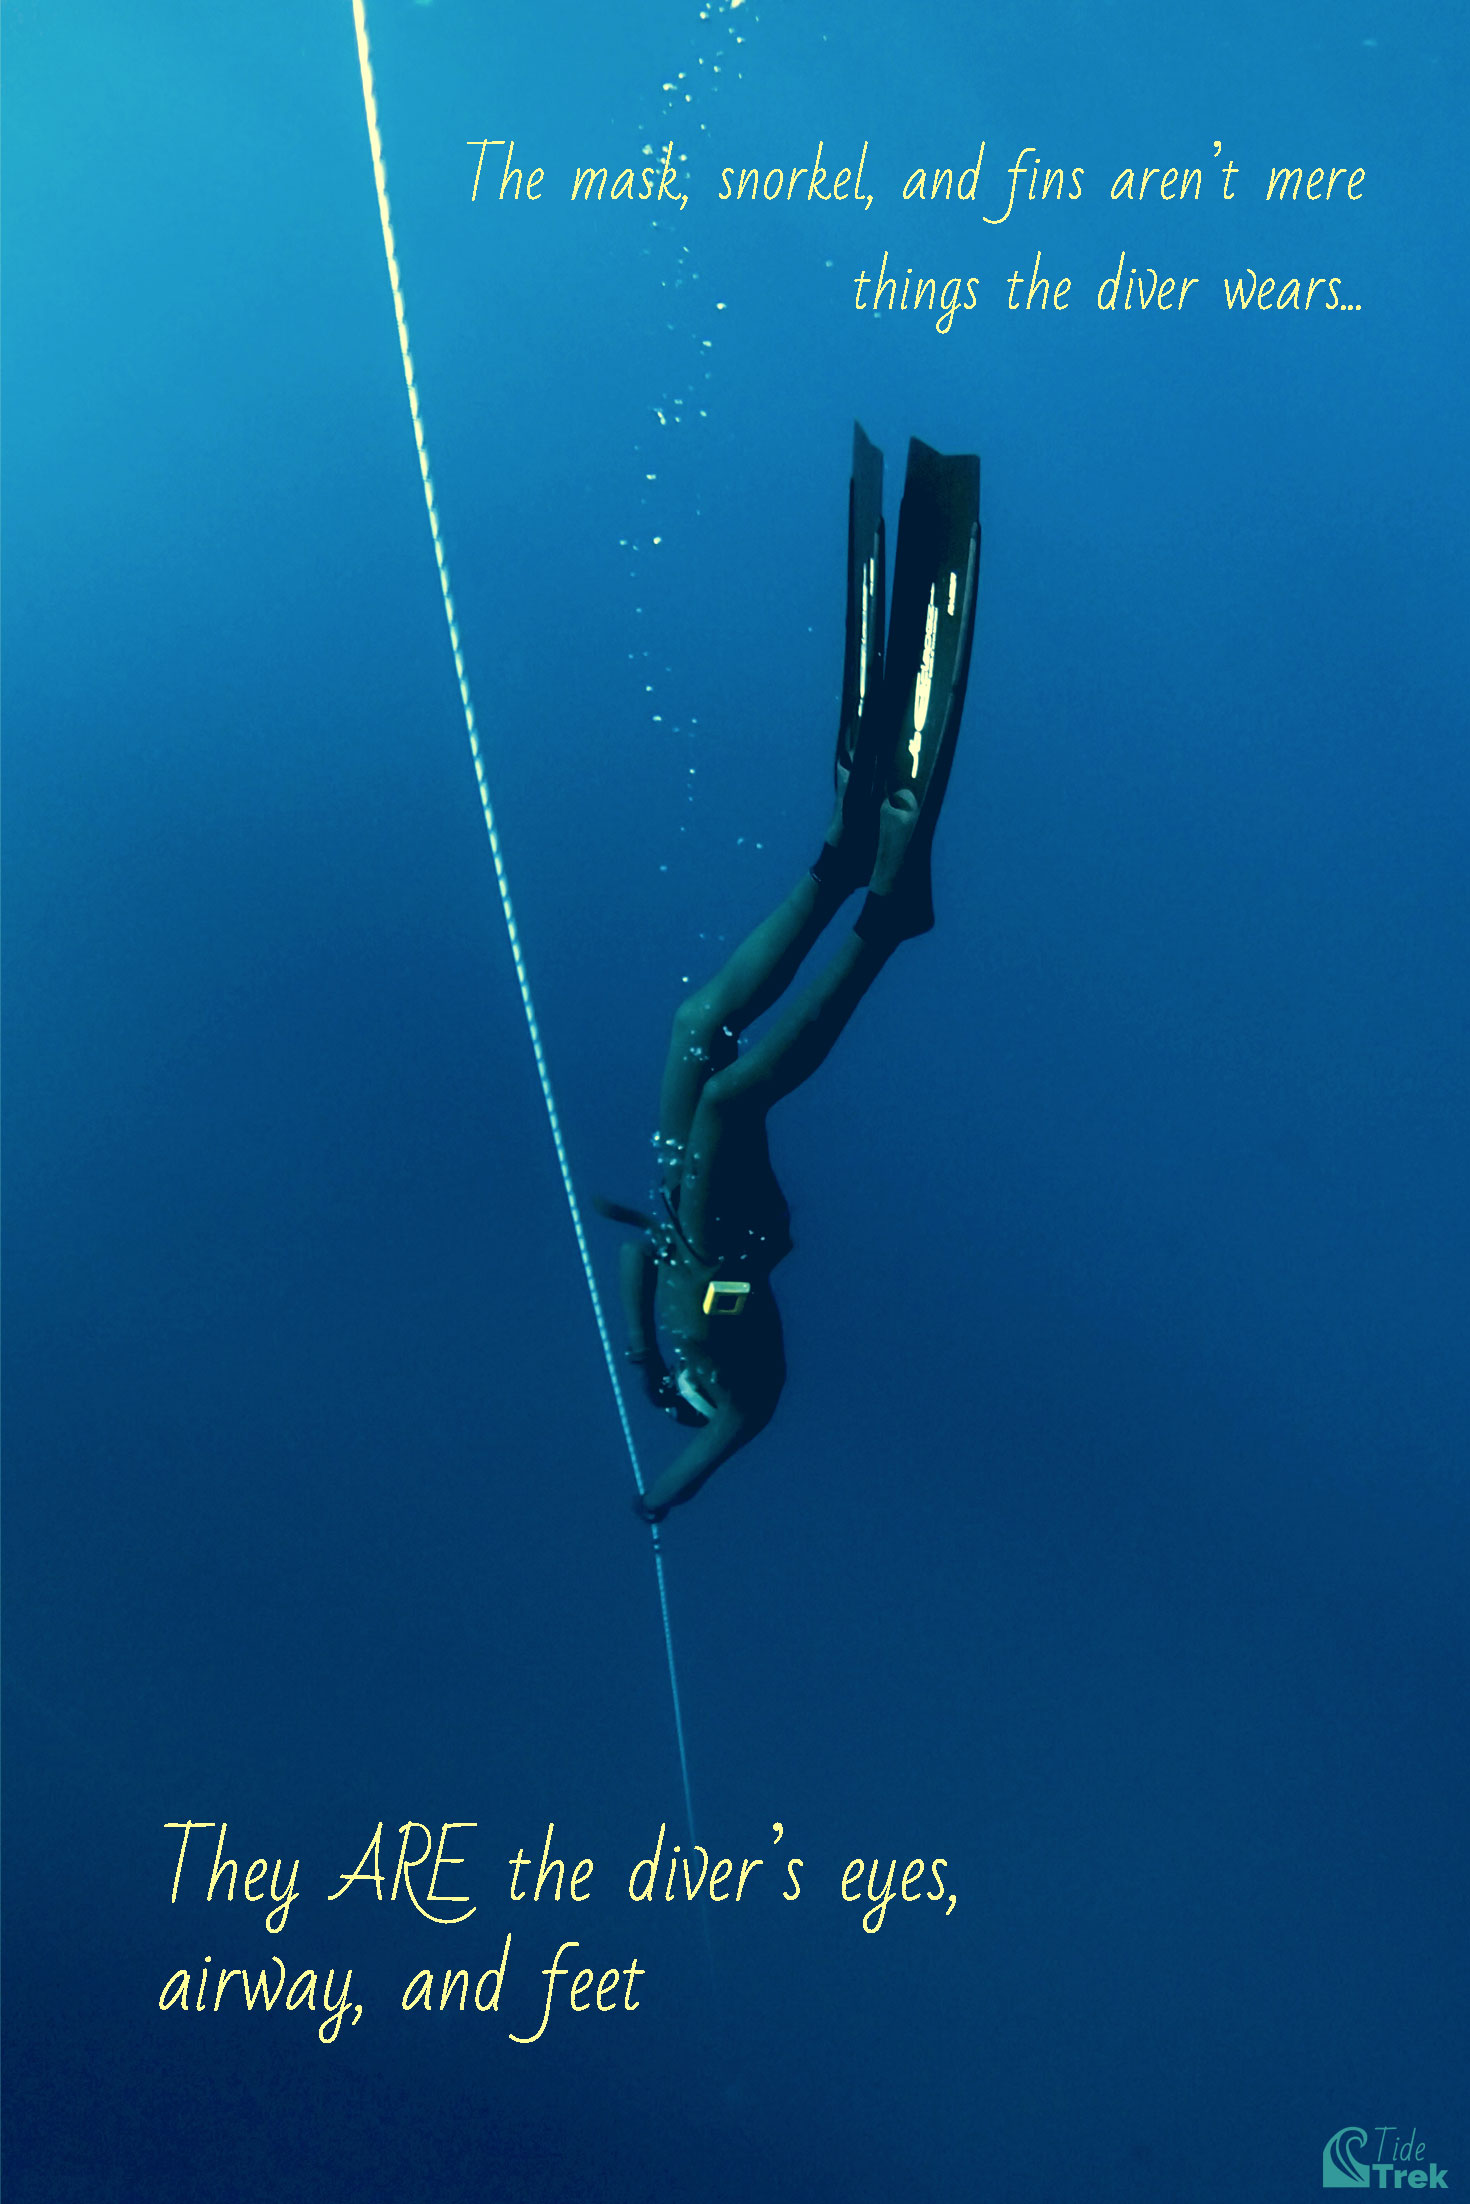 Freediving man descending vertically along a line wearing a freediving wetsuit and long freediving fins